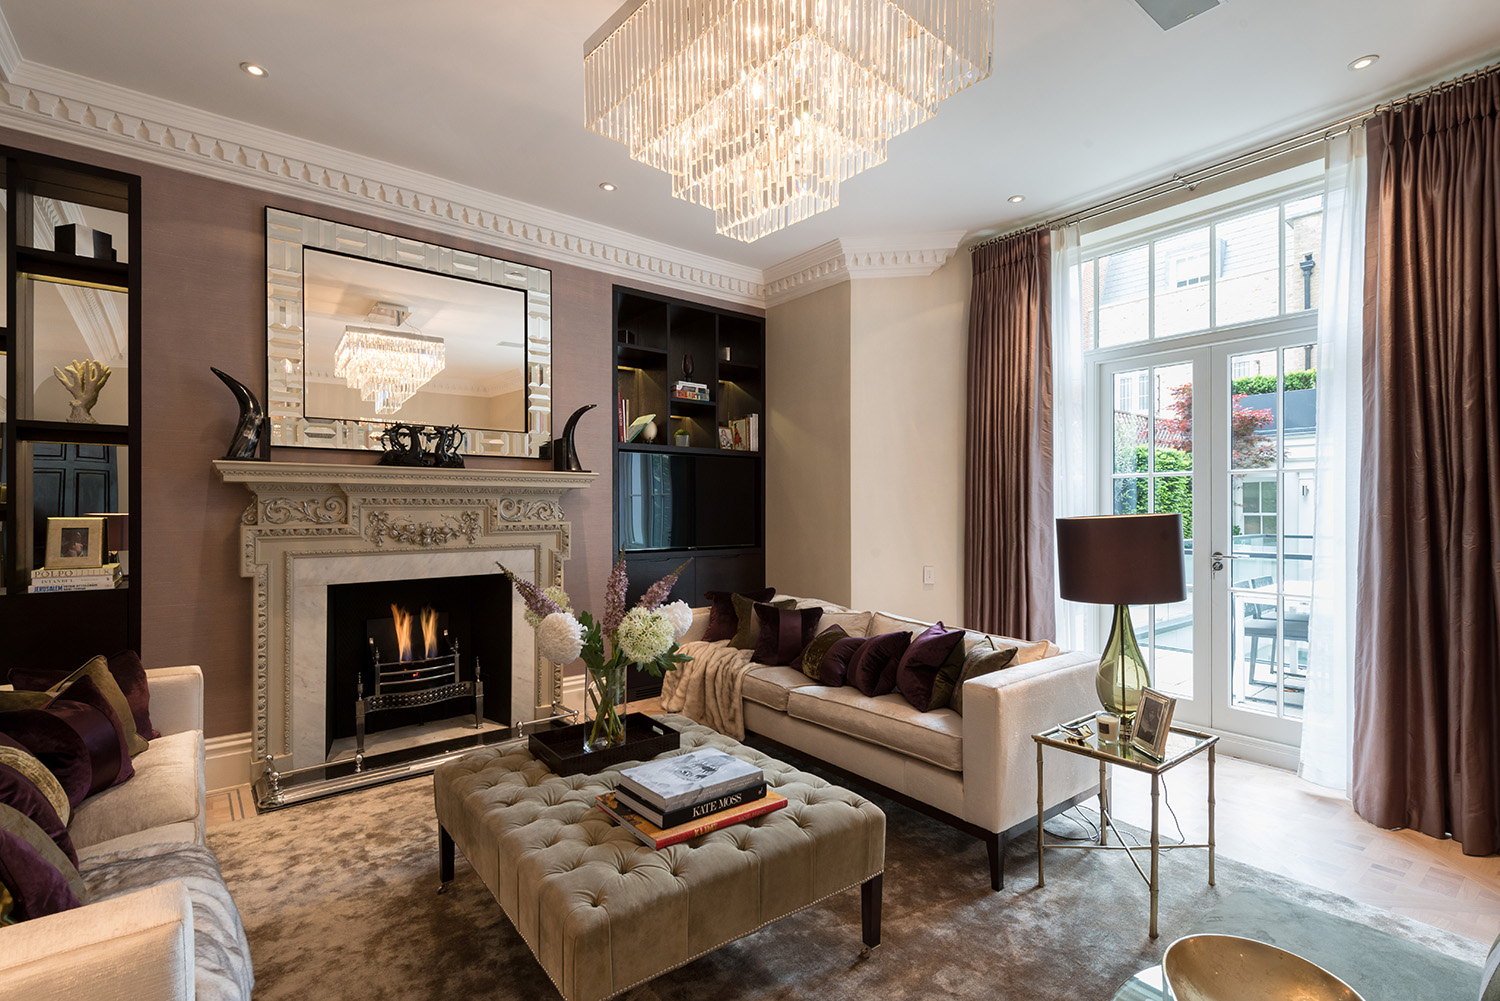 Design Box London - Interior Design - Mayfair Family Home .